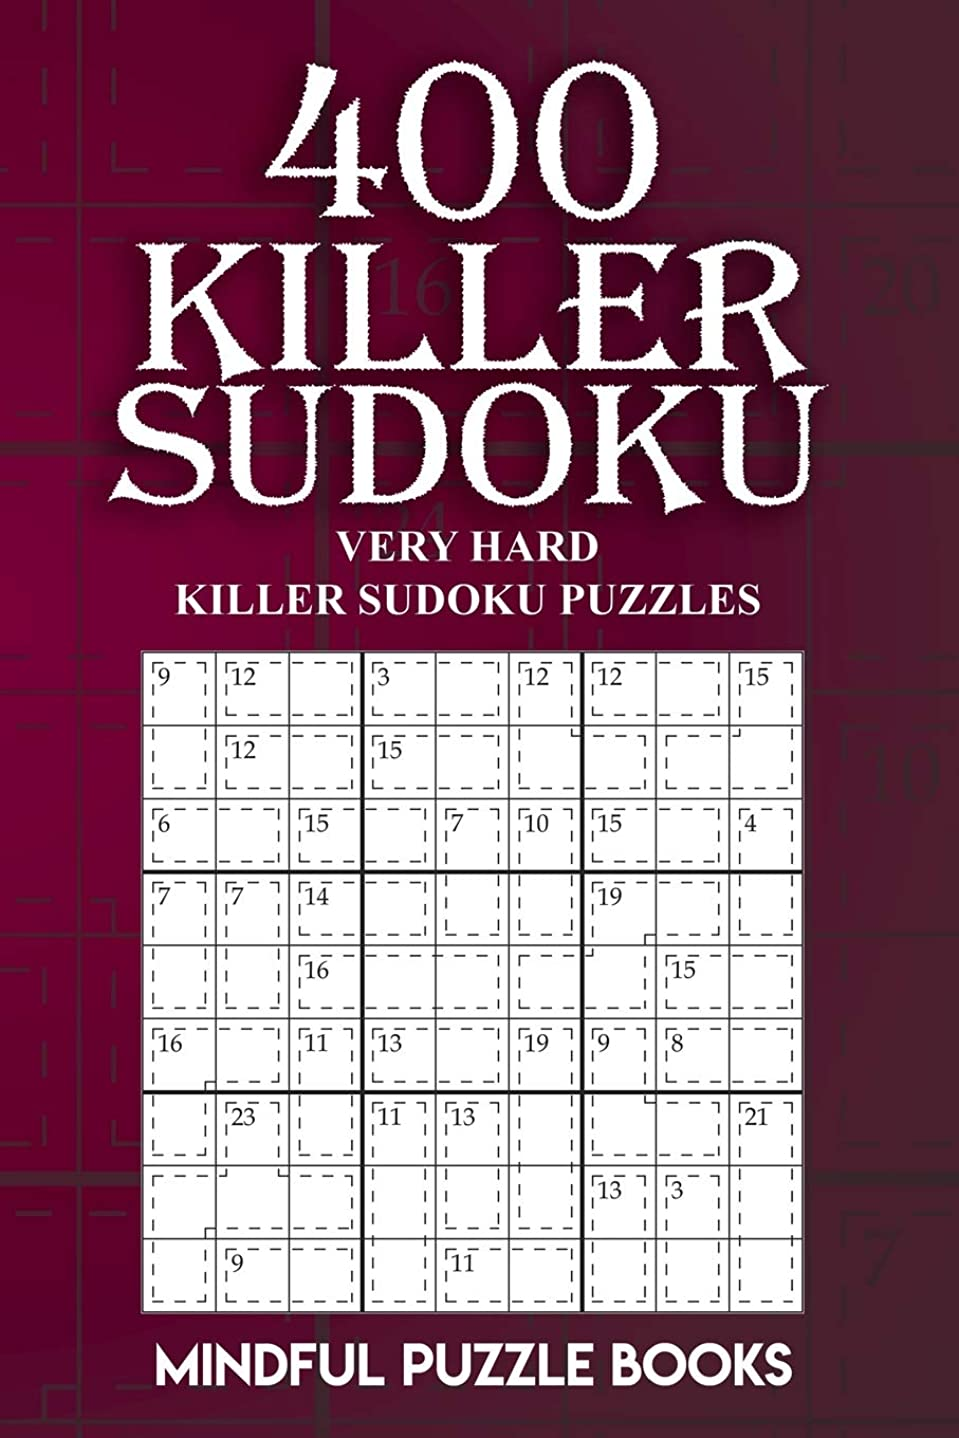 思想トラクターやめる400 Killer Sudoku: Very Hard Killer Sudoku Puzzles (Sudoku Killer)